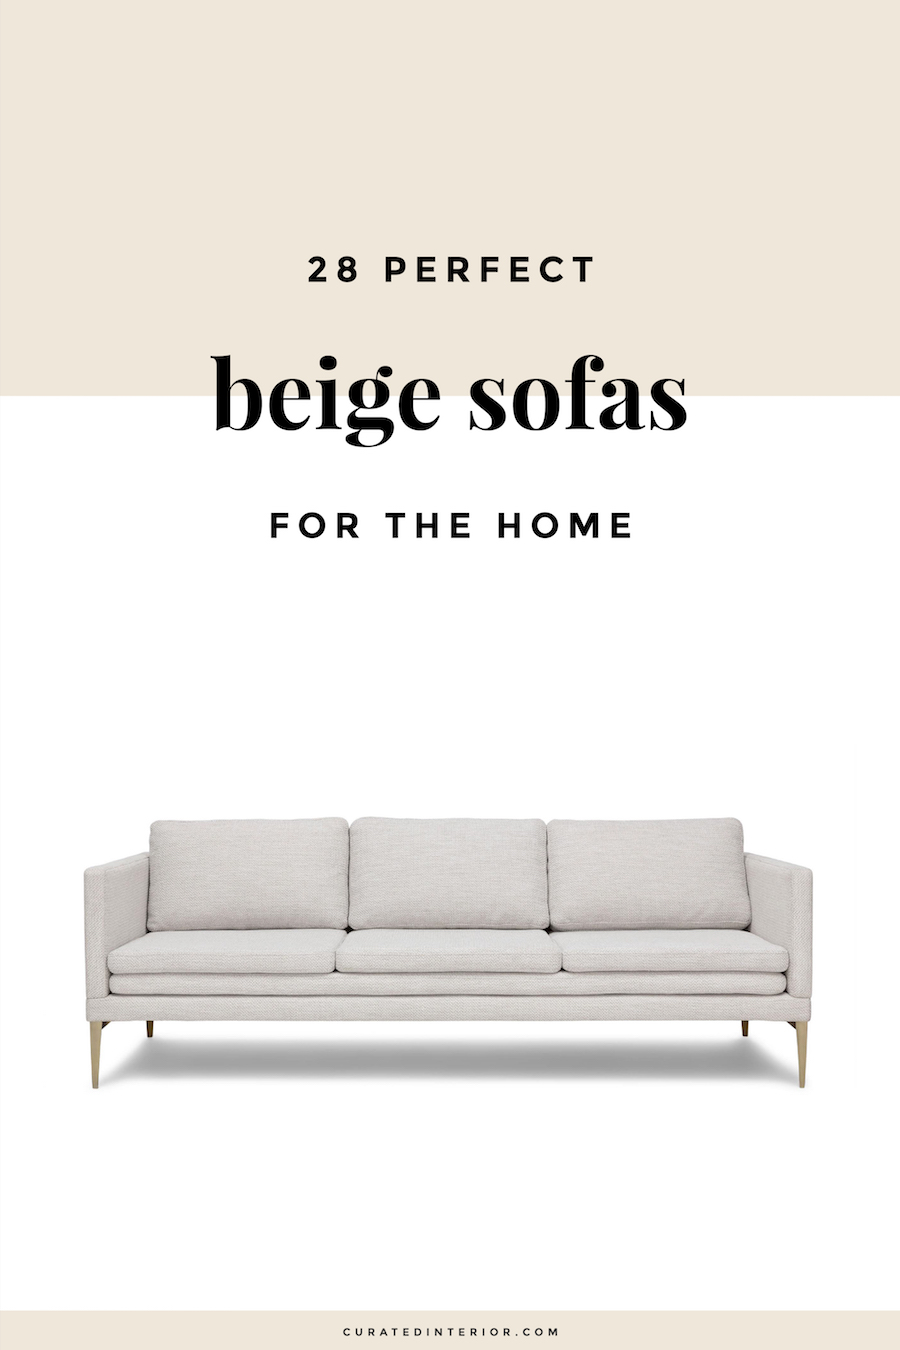 Perfect Beige Sofas for the Home, Sofa by Article